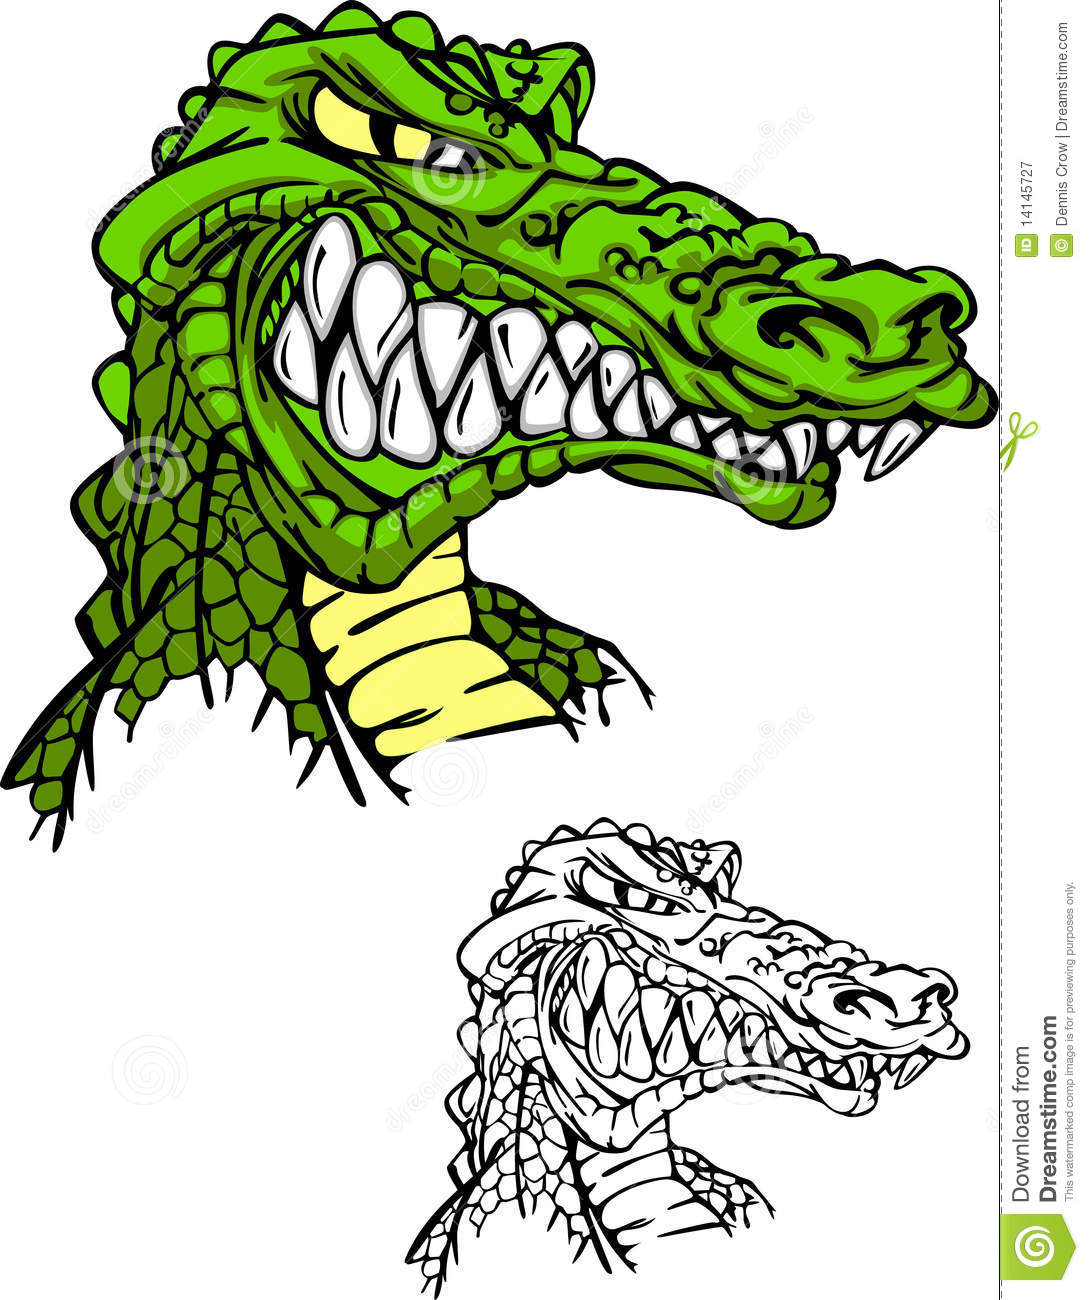 Cartoon Gator Head http://www.dreamstime.com/royalty-free-stock-photography-alligator-gator-head-logo-image14145727